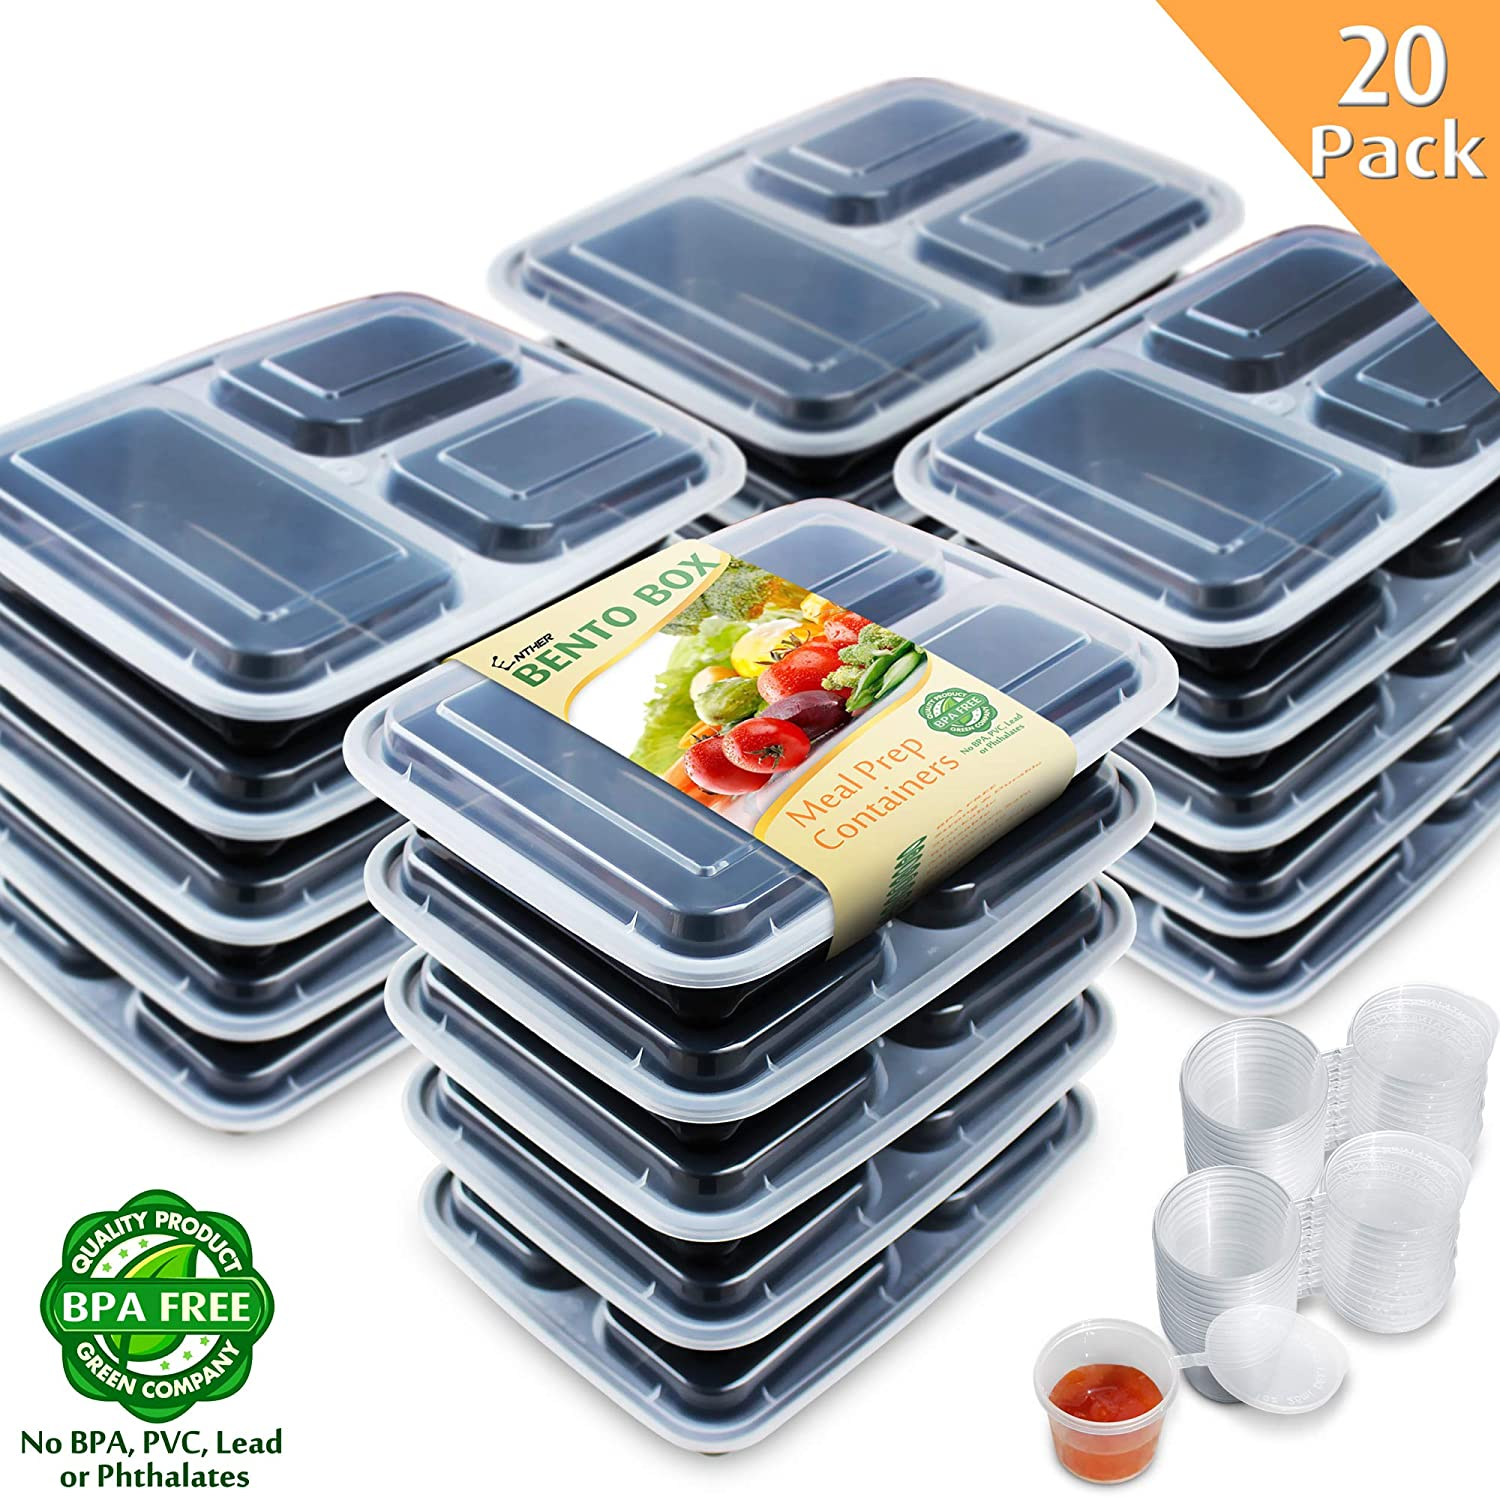 Enther Meal Prep Containers [20 Pack] 36oz 3 Compartment with Lids, Food Storage Bento Box with Souffle Cups BPA Free/Reusable/Stackable, Microwave/Freezer/Dishwasher Safe, Portion Control Black